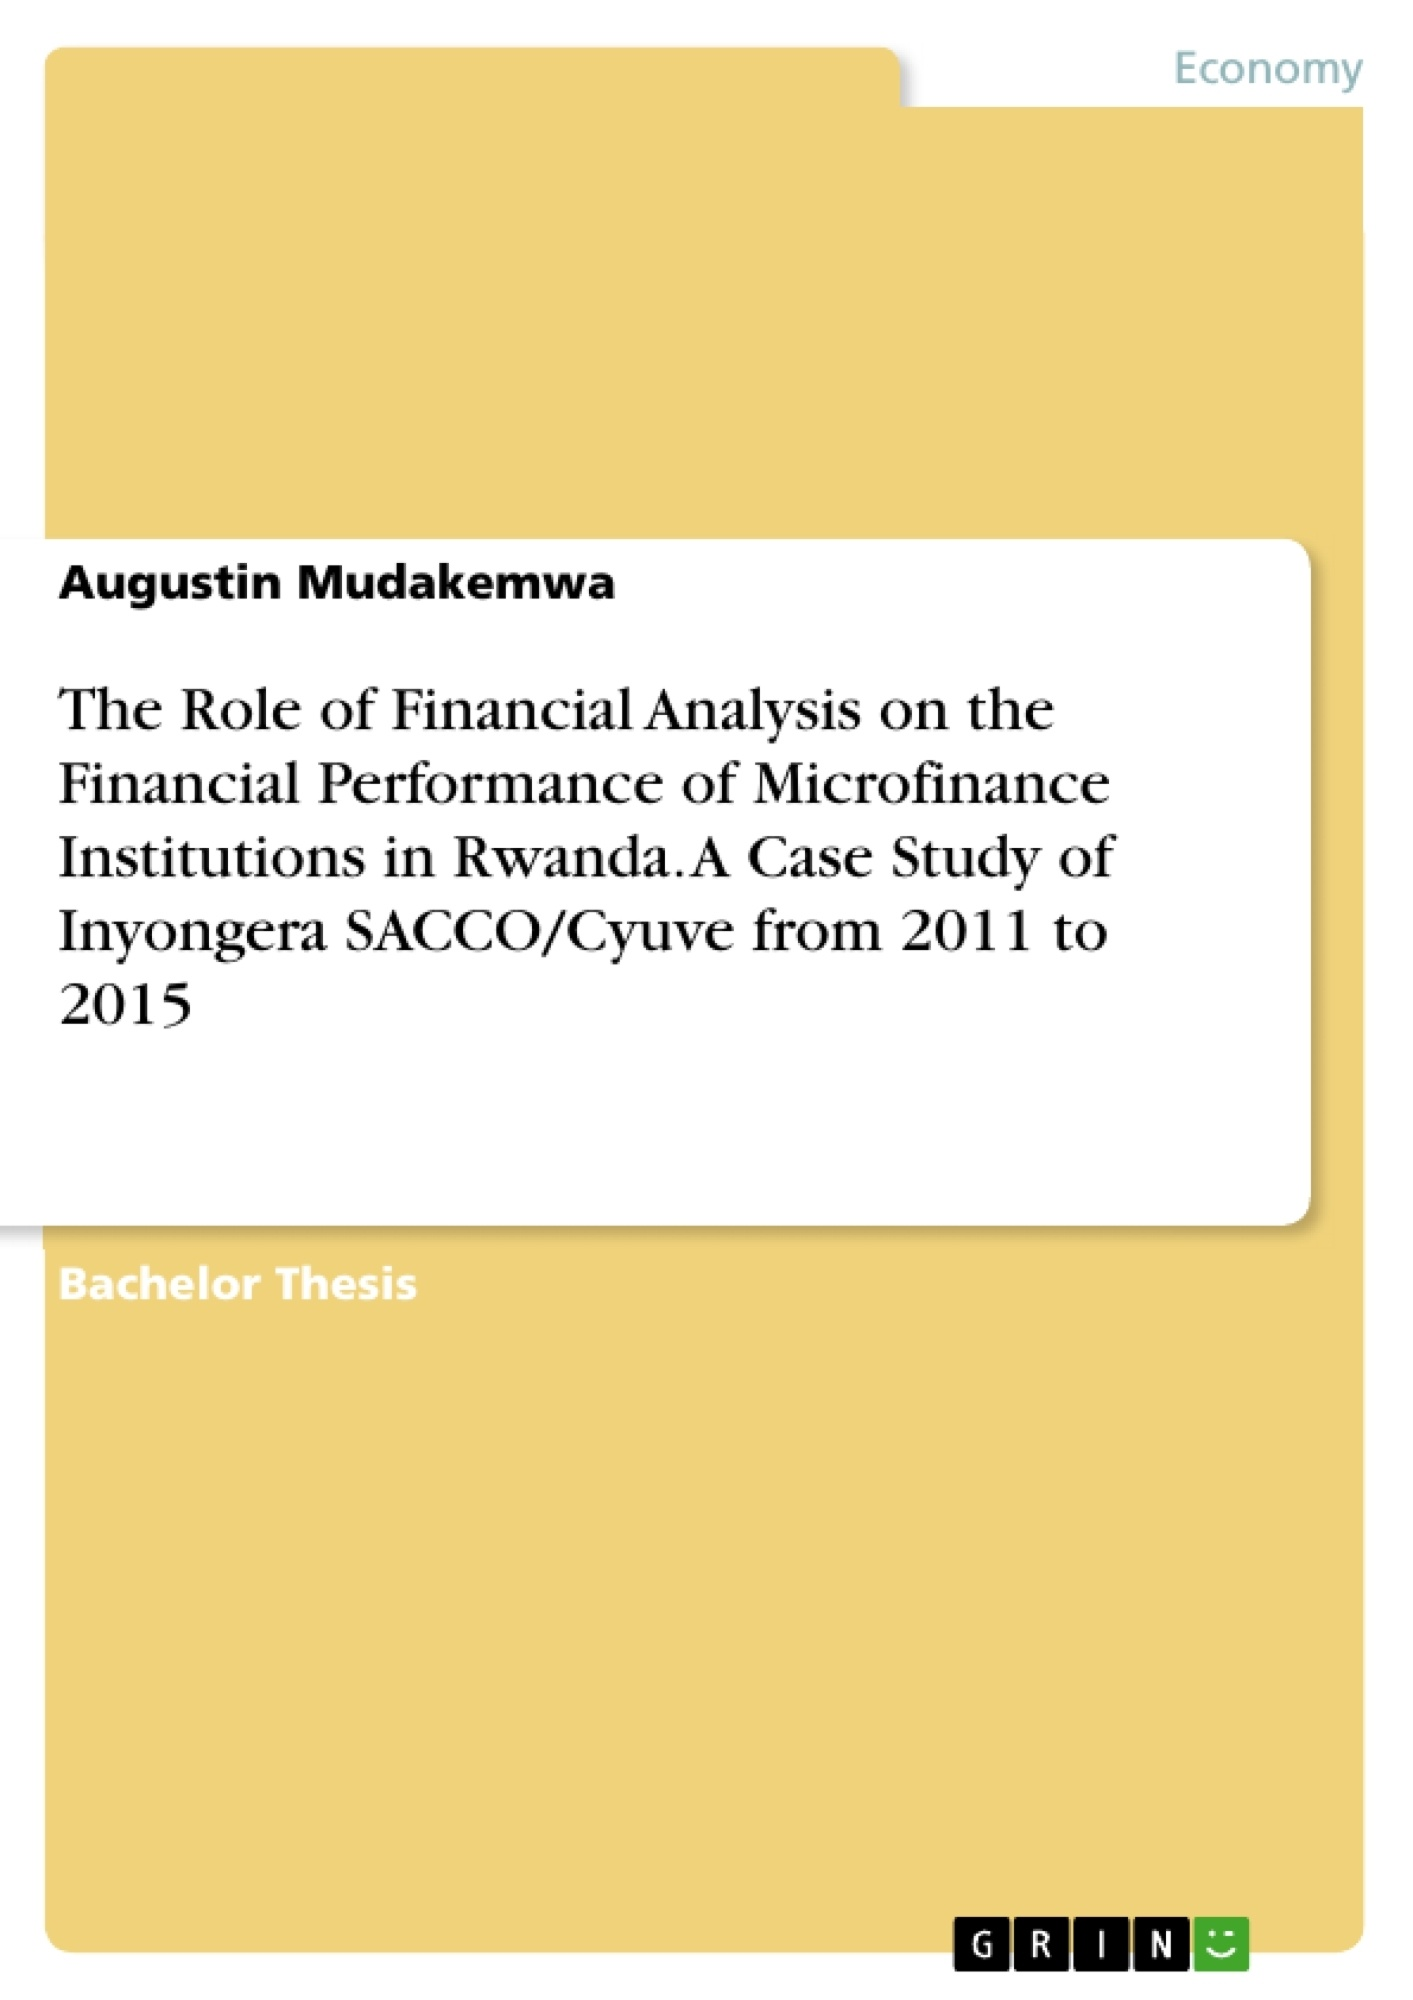 Title: The Role of Financial Analysis on the Financial Performance of Microfinance Institutions in Rwanda. A Case Study of Inyongera SACCO/Cyuve from 2011 to 2015